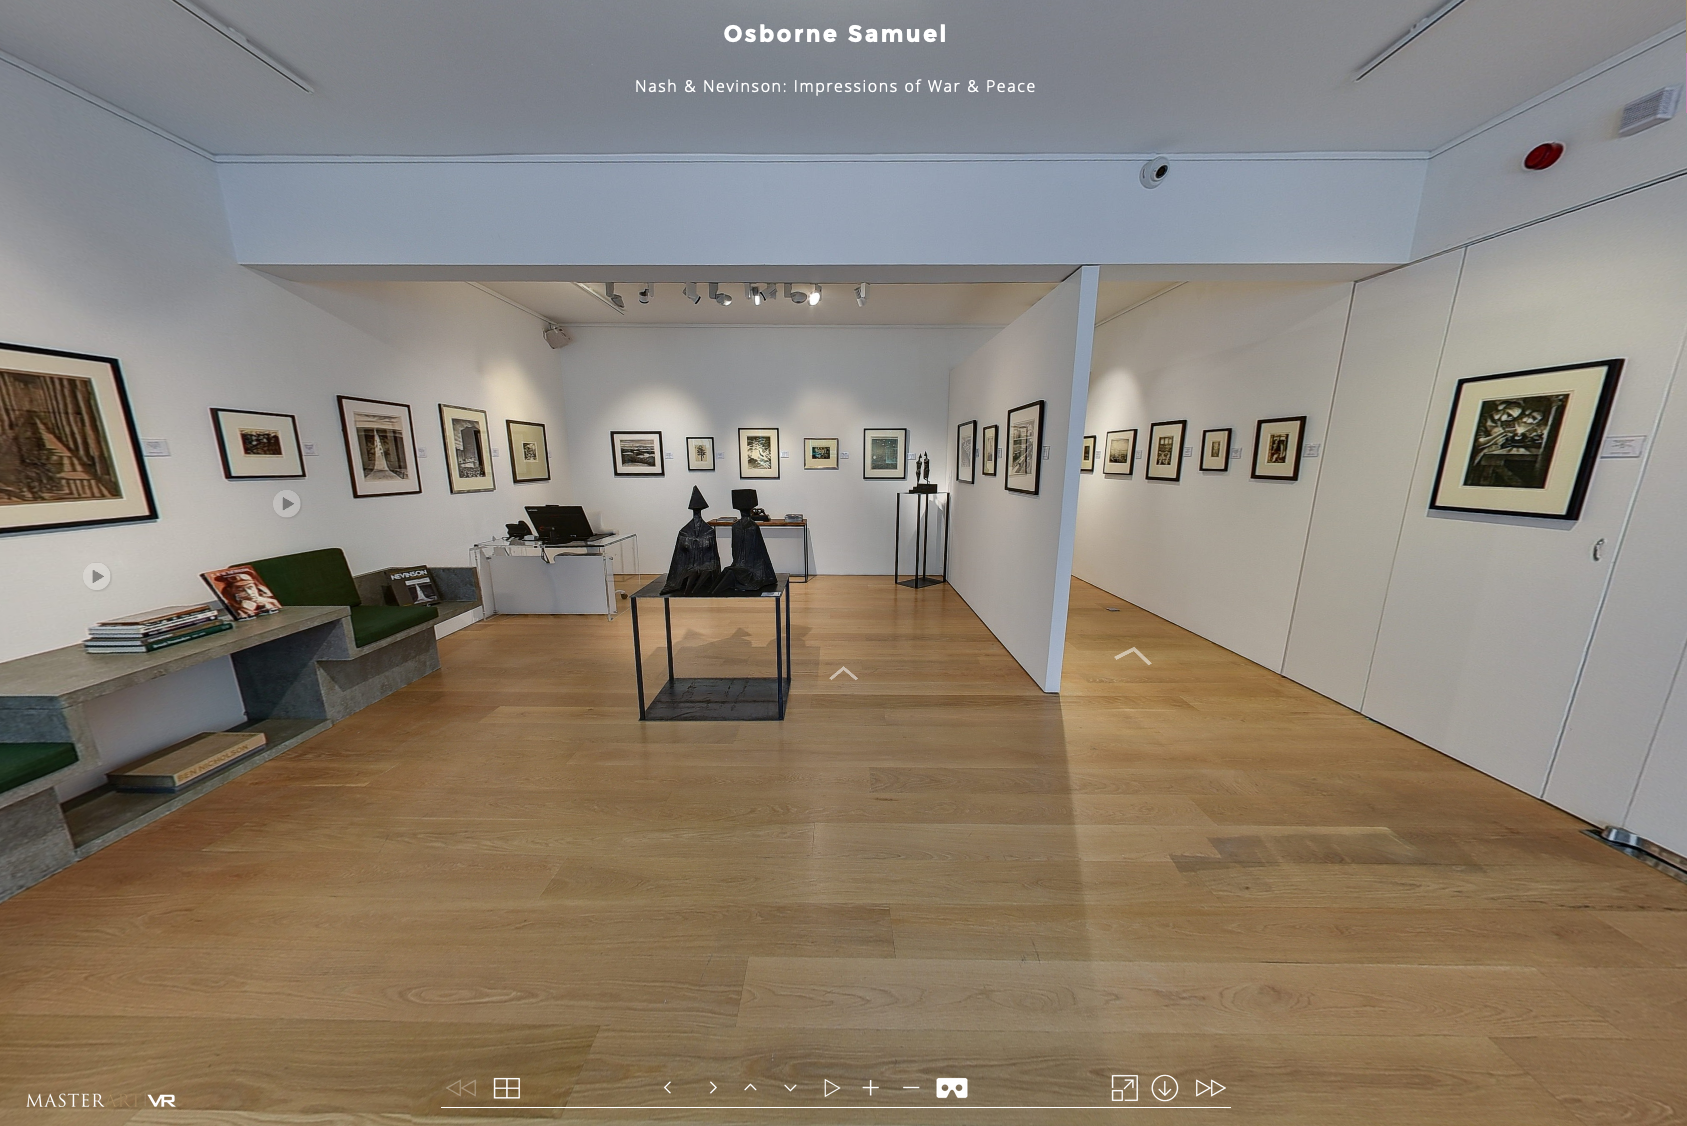 Nash & Nevinson: Impressions of War and Peace – Virtual Tour